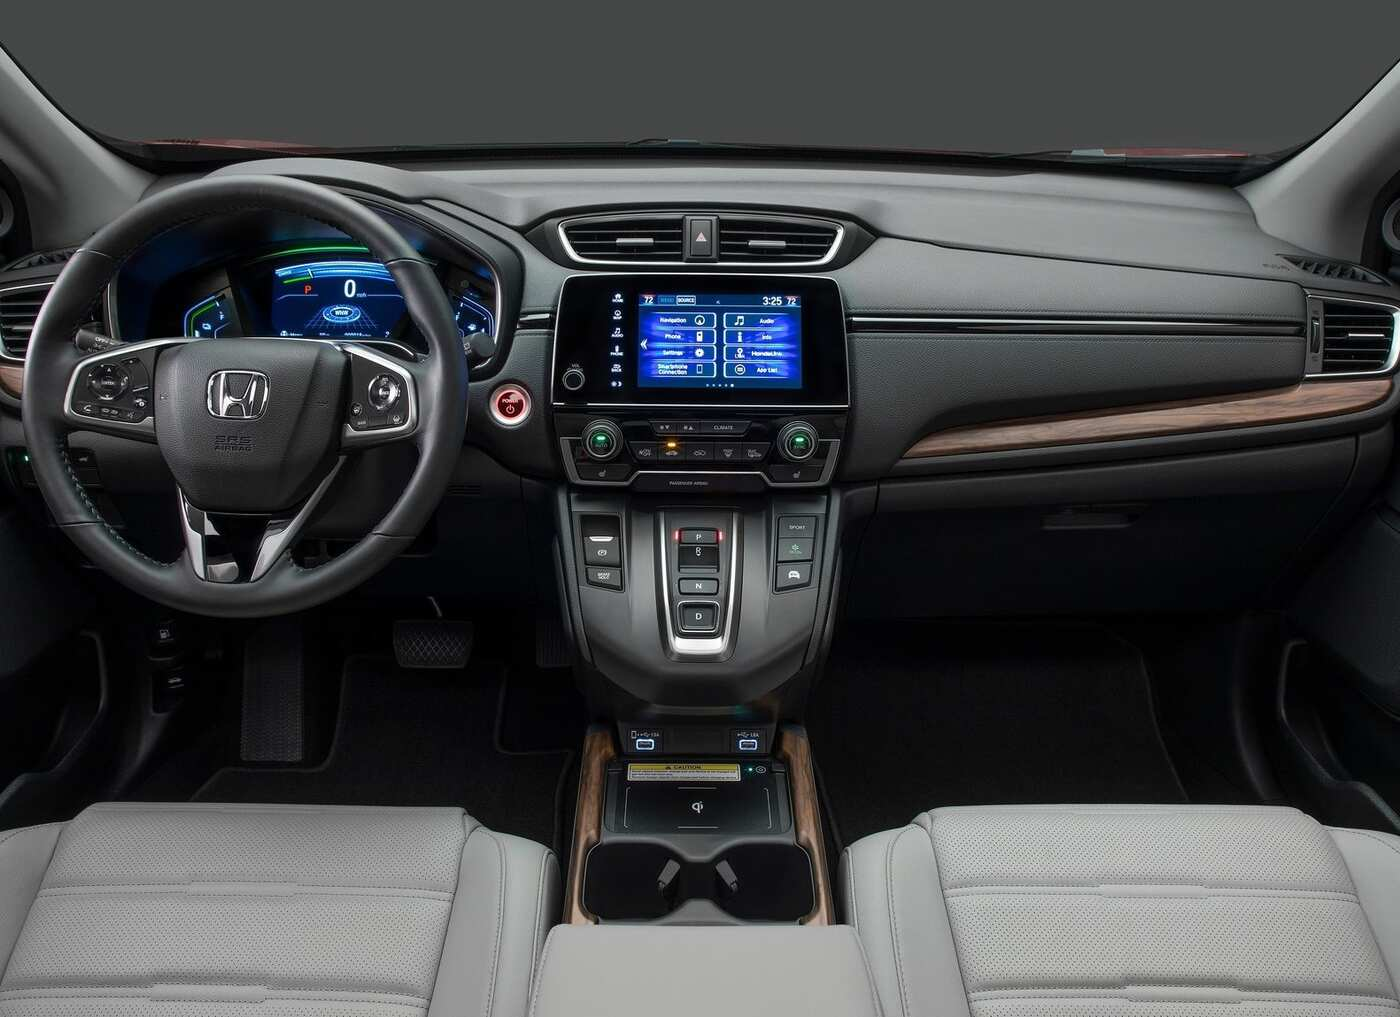 Honda Crv Cargo Space >> 2020 Honda CR-V Interior Review - Seating, Infotainment ...